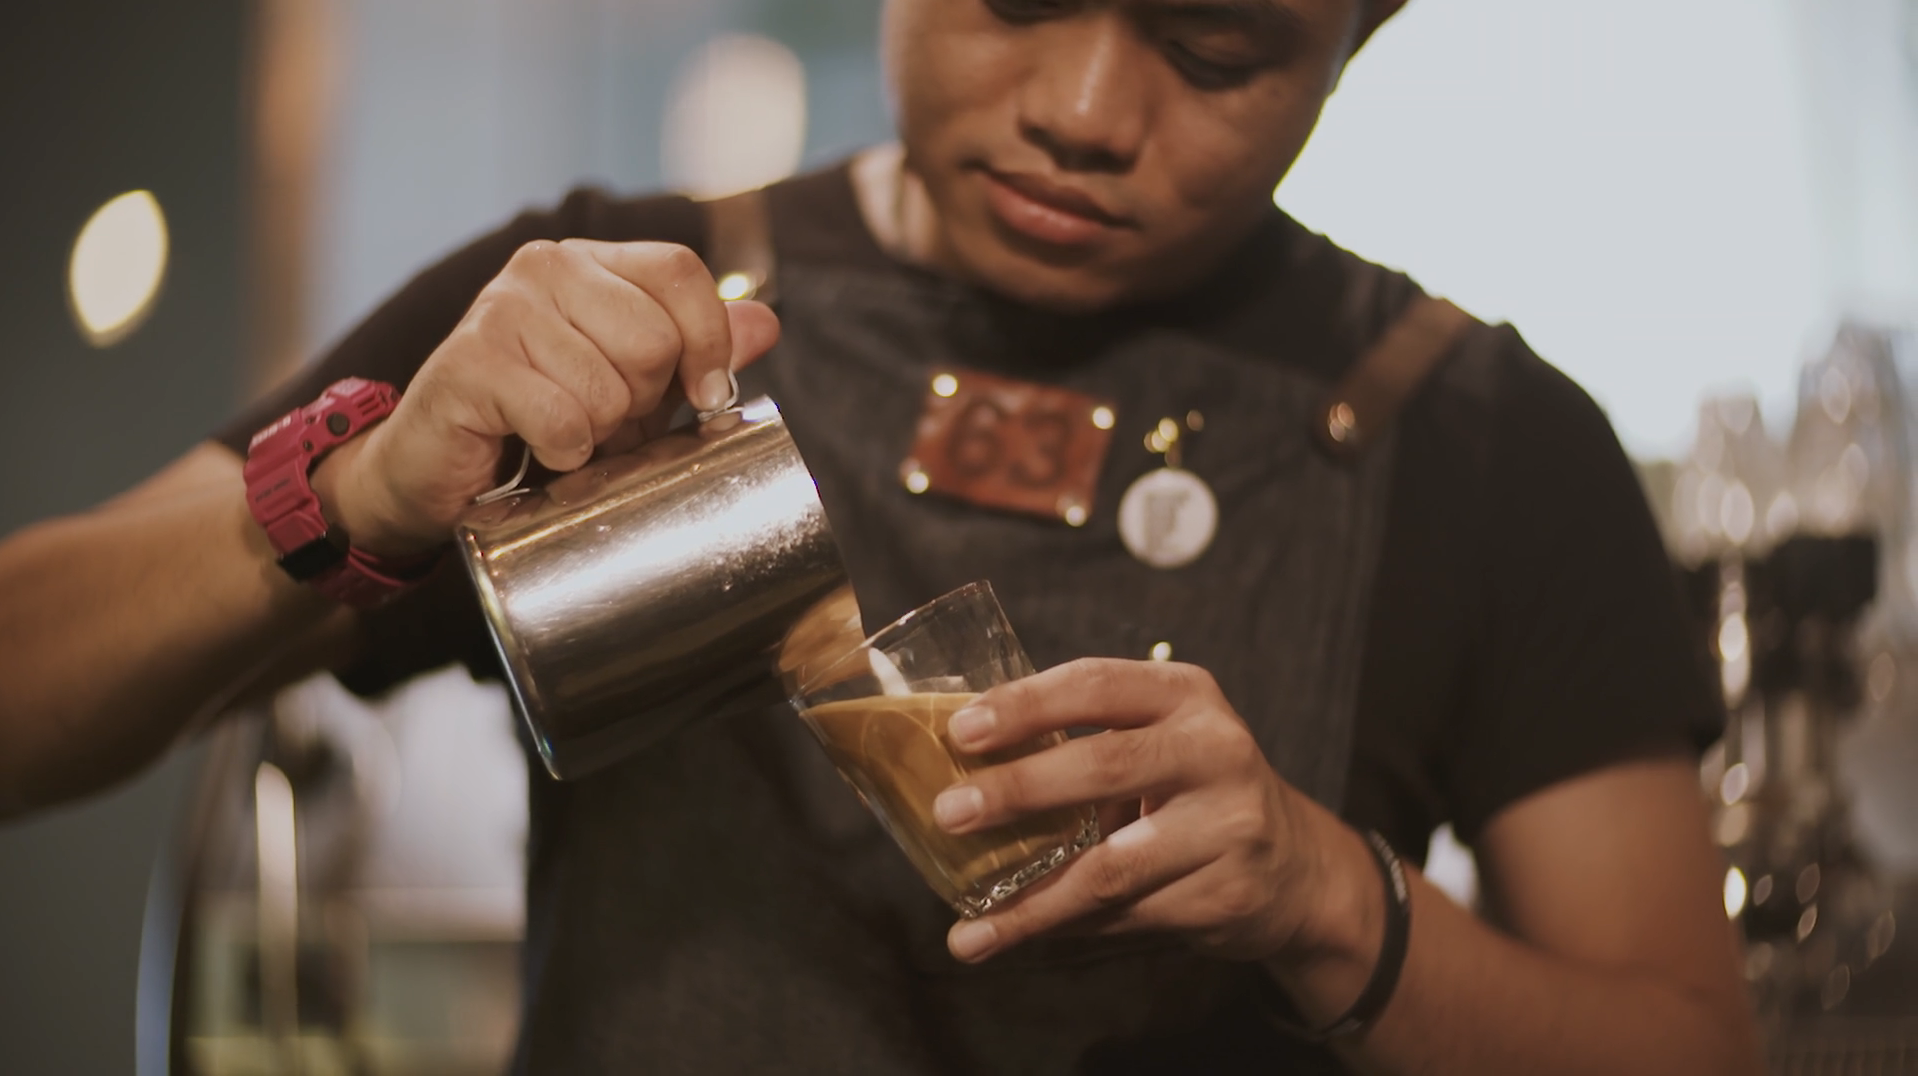 The Story of My Cup – Mohamad Hairol from 63Espresso